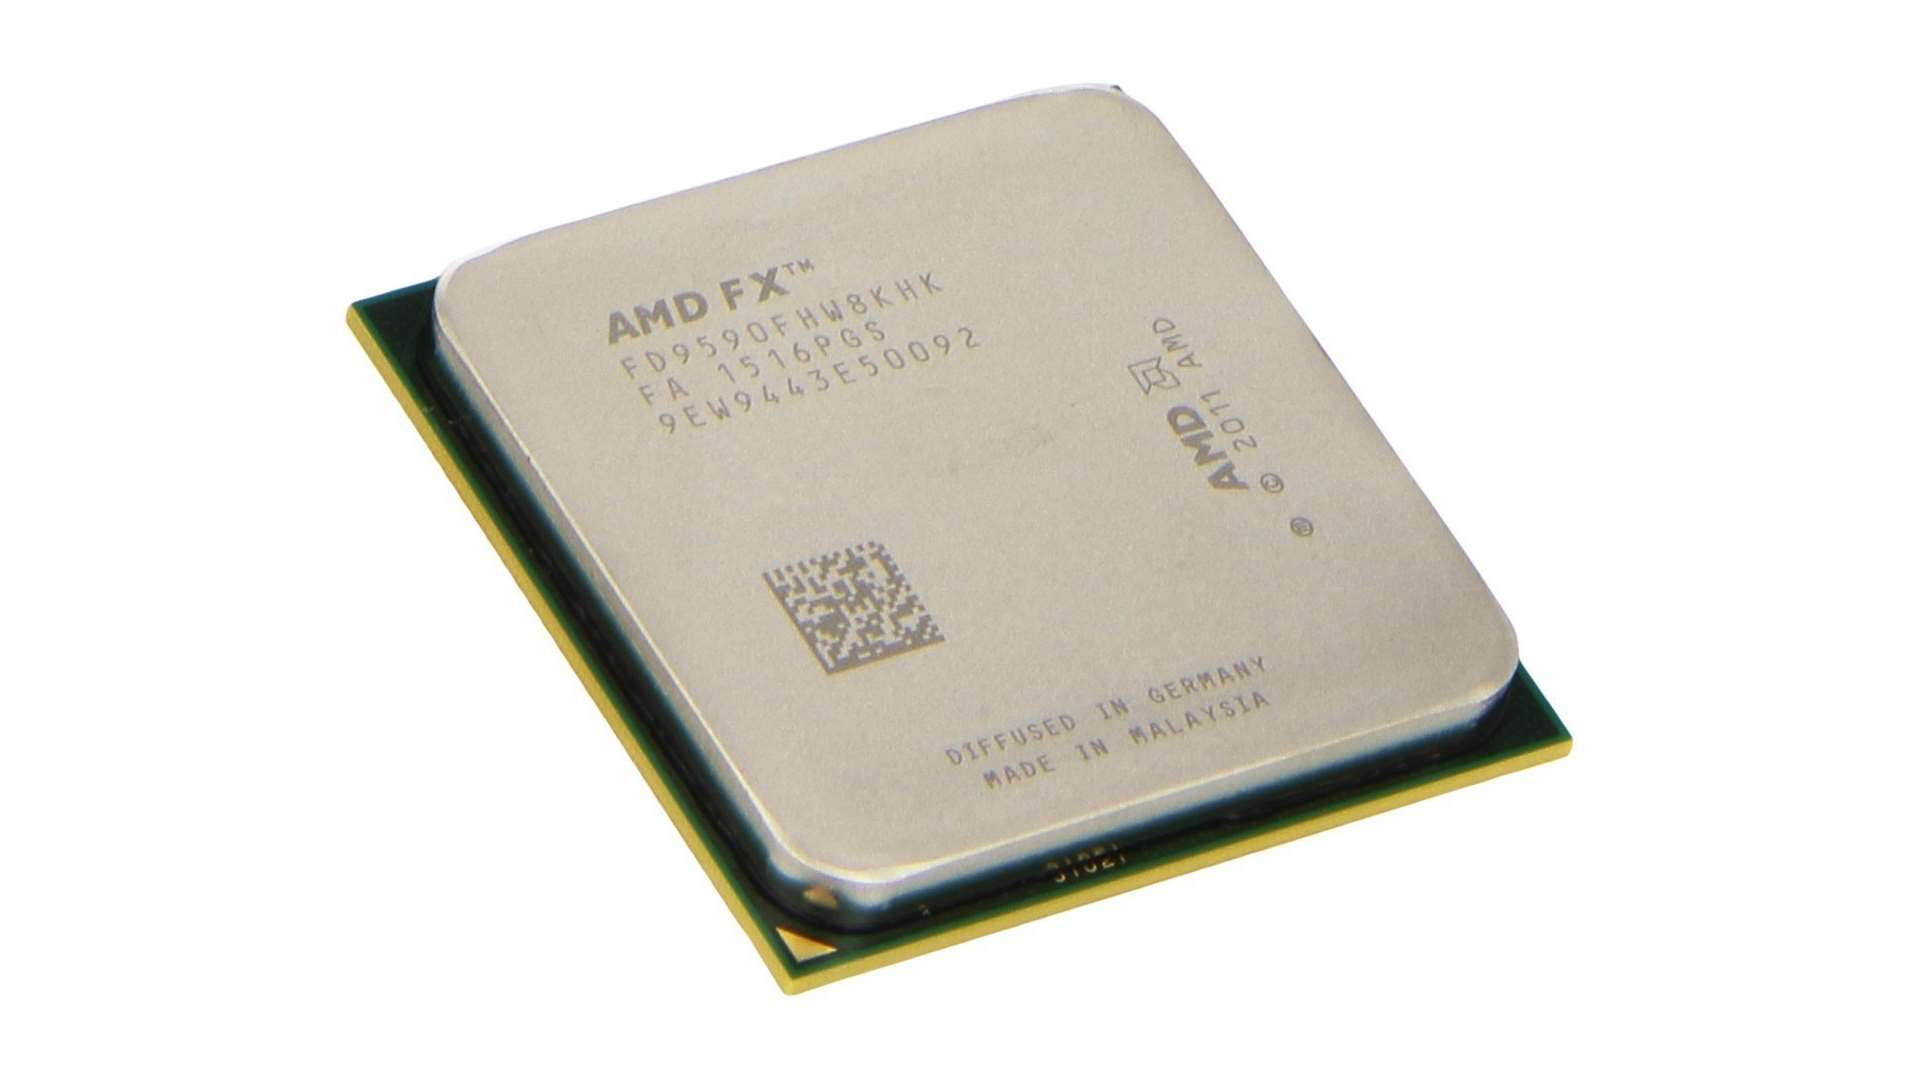 AMD's last-gen CPUs could cost the company millions as US